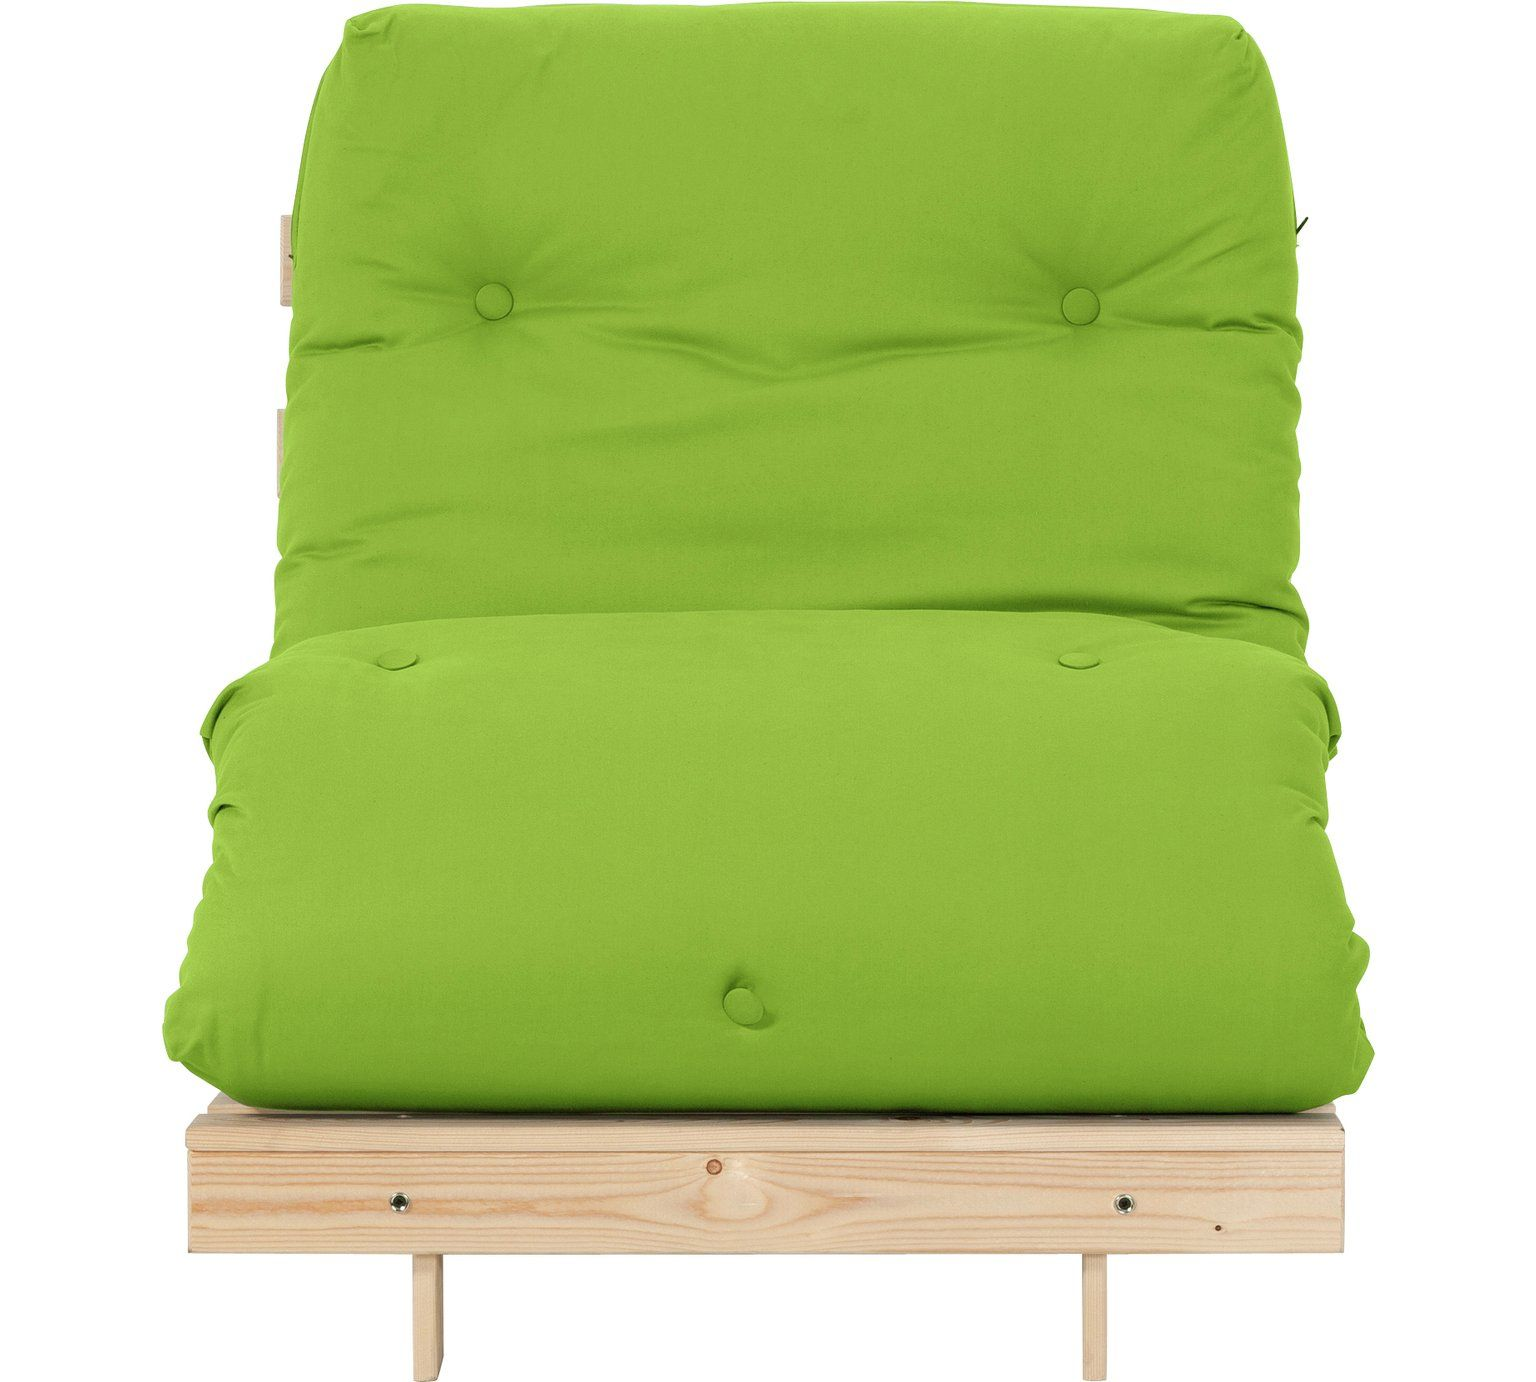 Buy HOME Single Futon Sofa Bed with Mattress Green